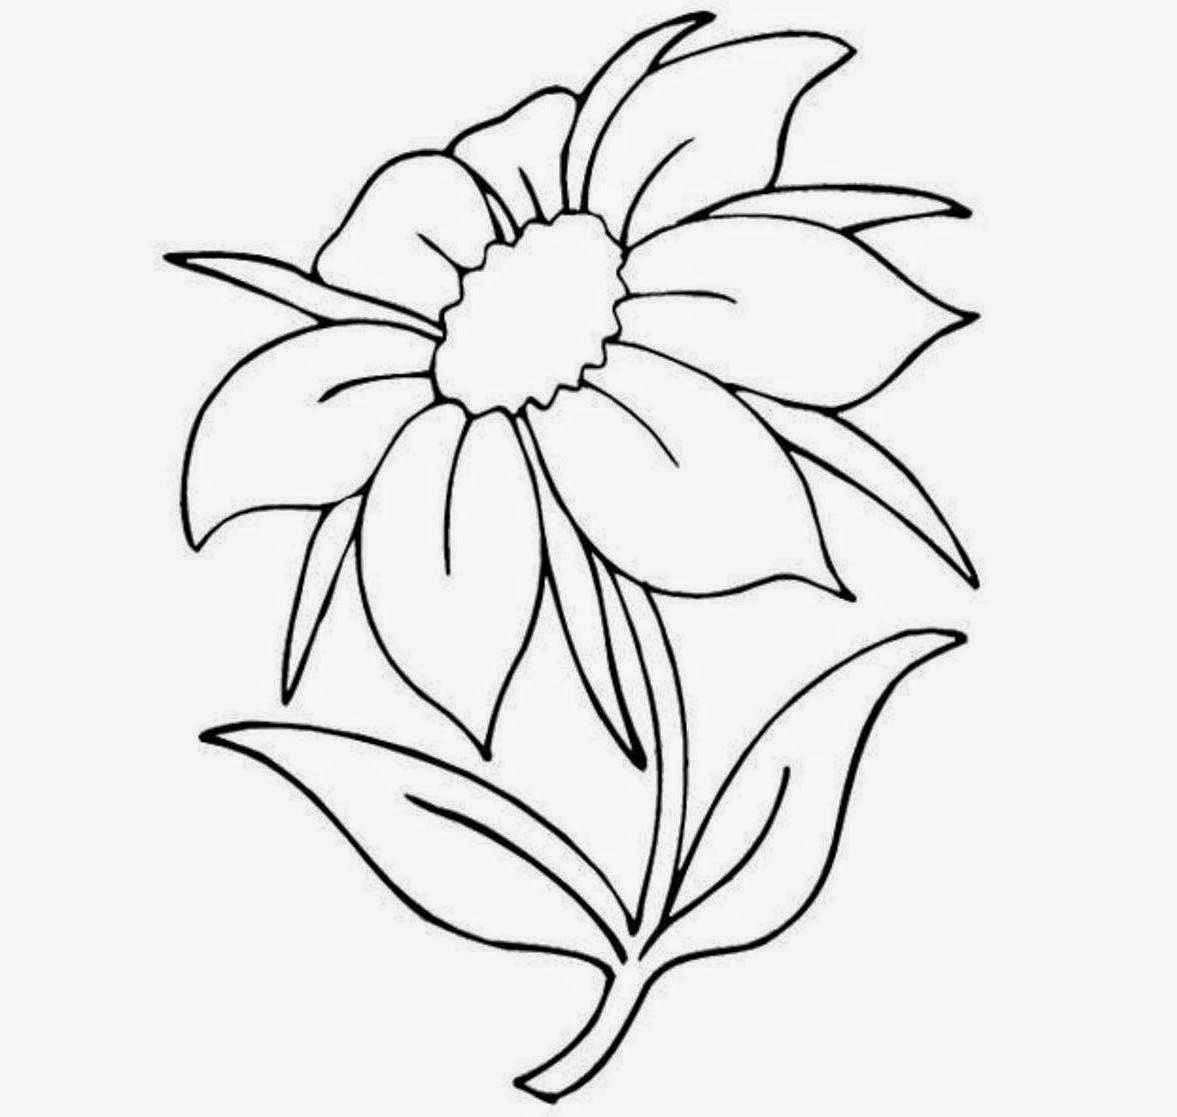 Pretty flowers drawing at getdrawings free for personal use 1177x1117 how draw a pretty flower drawing easy flowers easy mightylinksfo